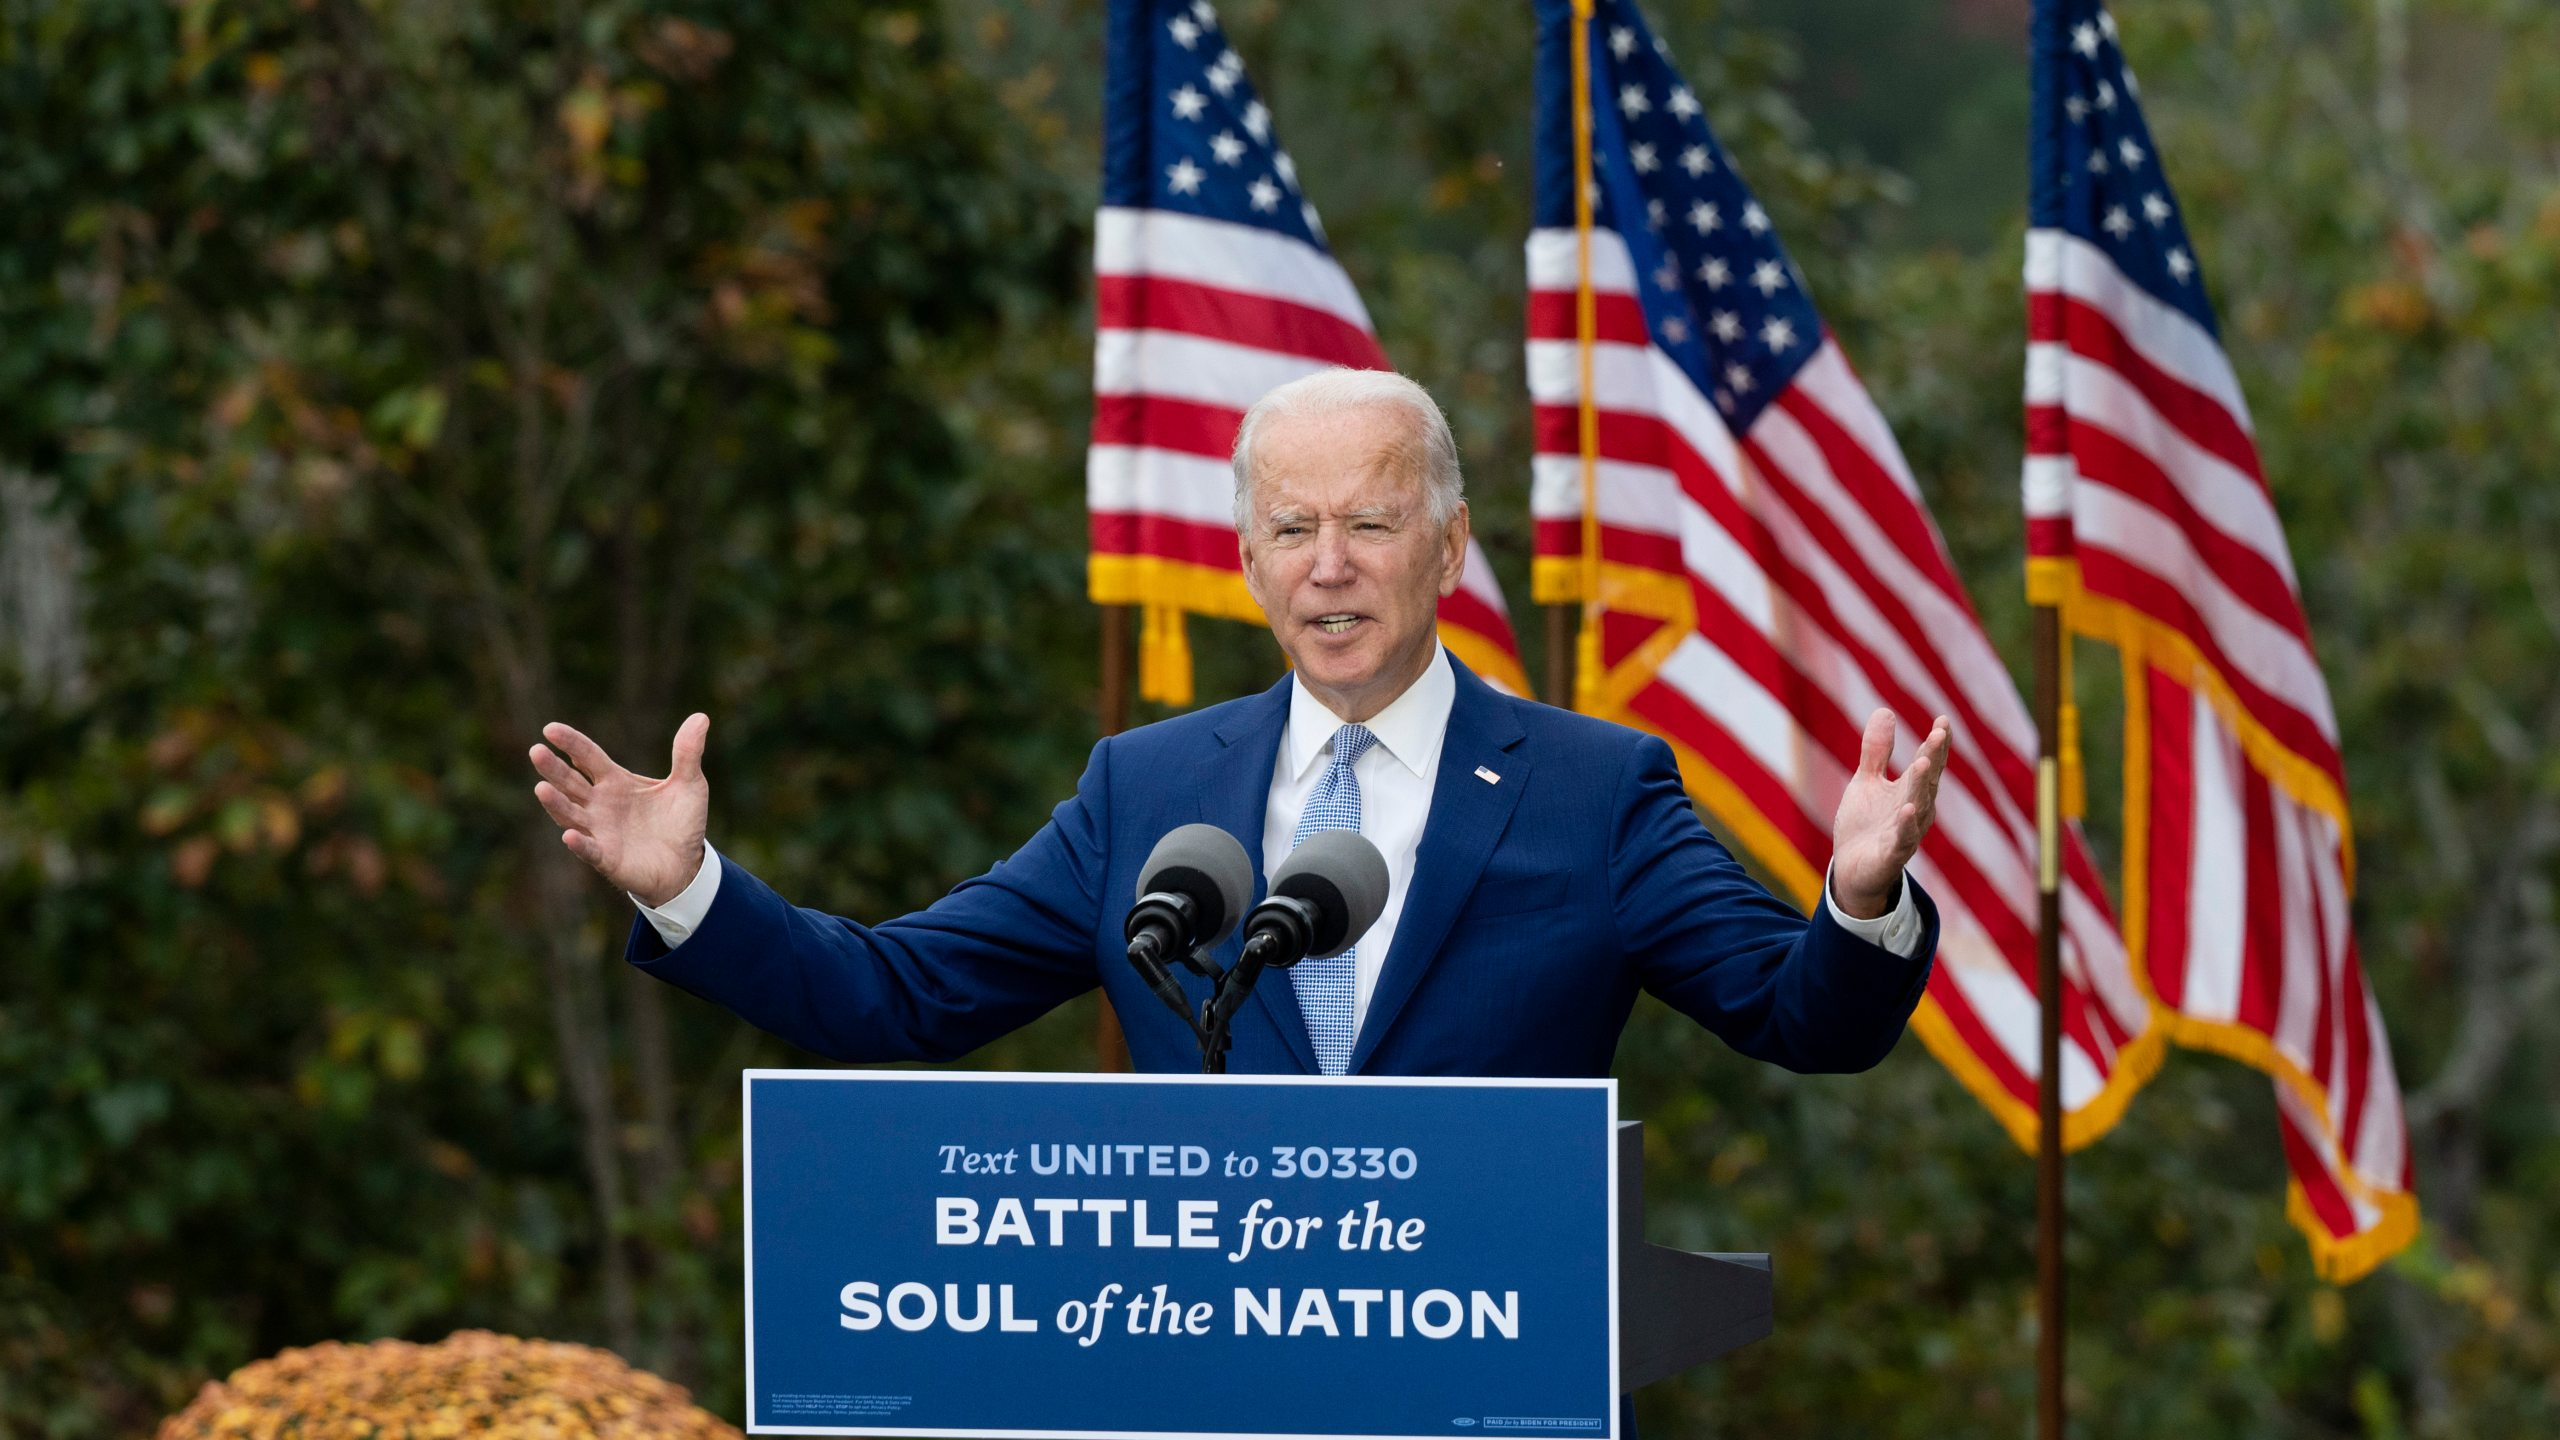 Democratic presidential candidate Joe Biden speaks at The Mountain Top Inn and Resort in Warm Springs, Georgia on Oct. 27, 2020. (JIM WATSON/AFP via Getty Images)